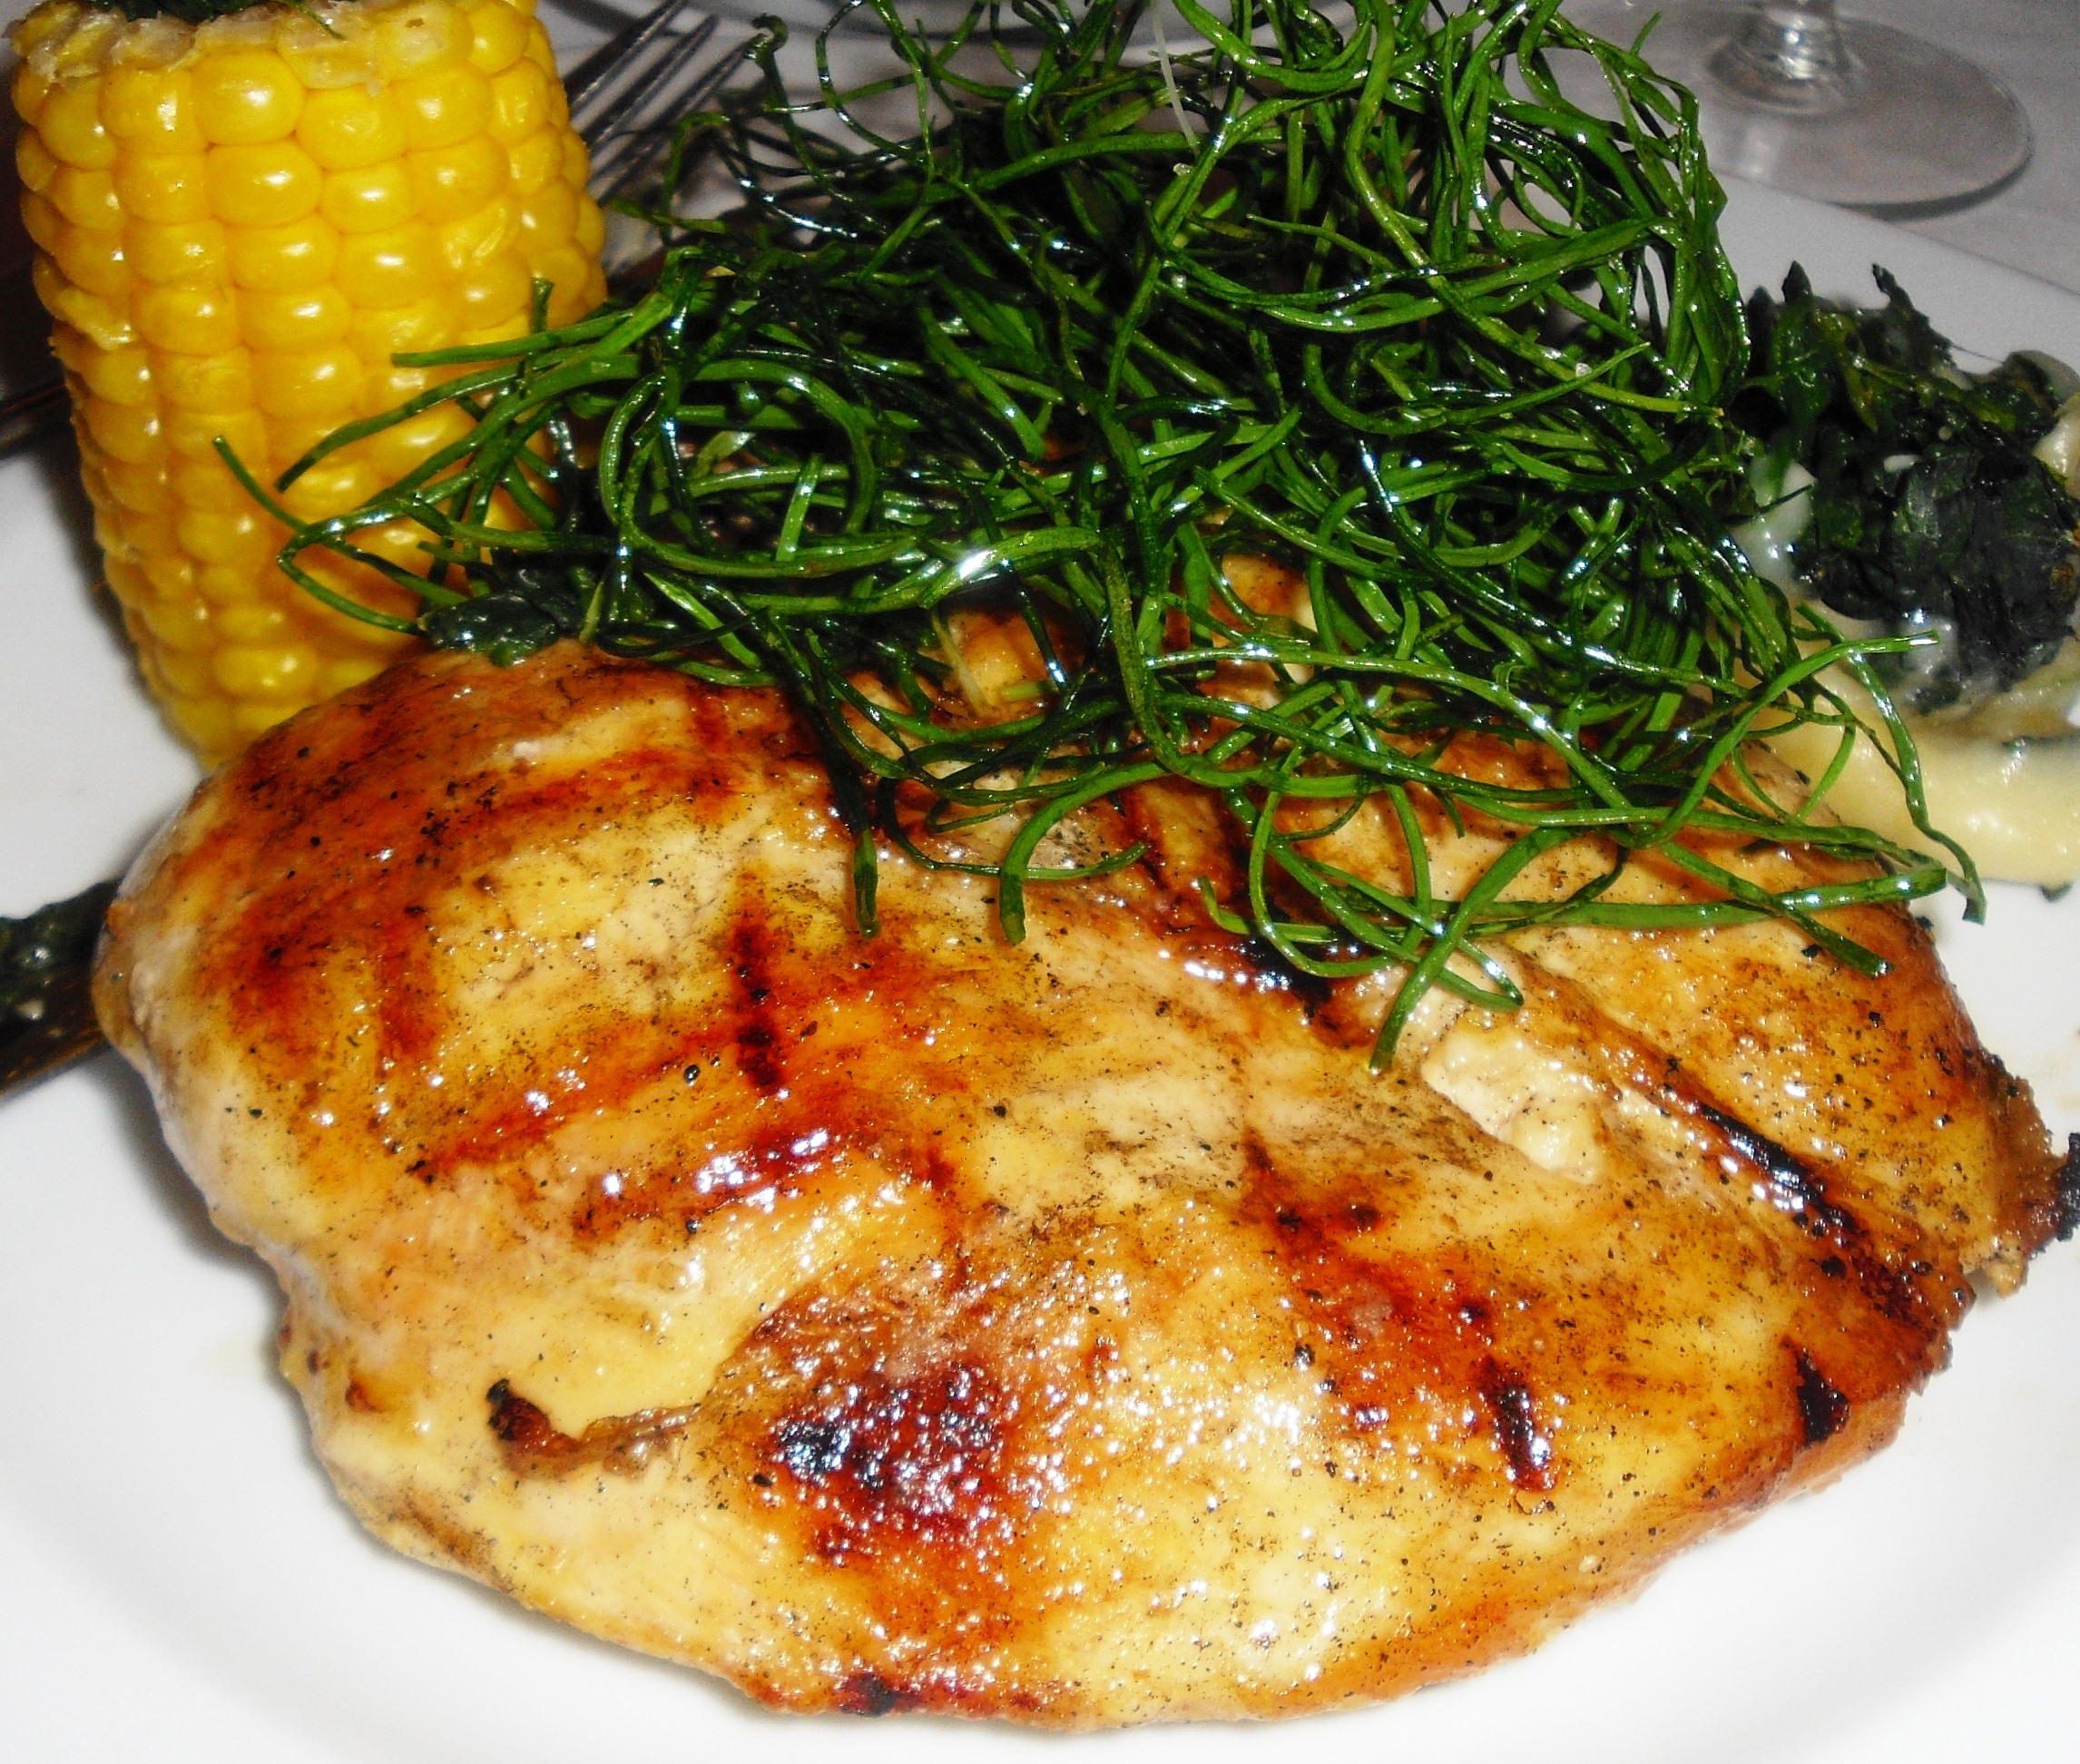 ... Course Main Dish Poultry - Chicken Garlic-roasted Chicken Breasts